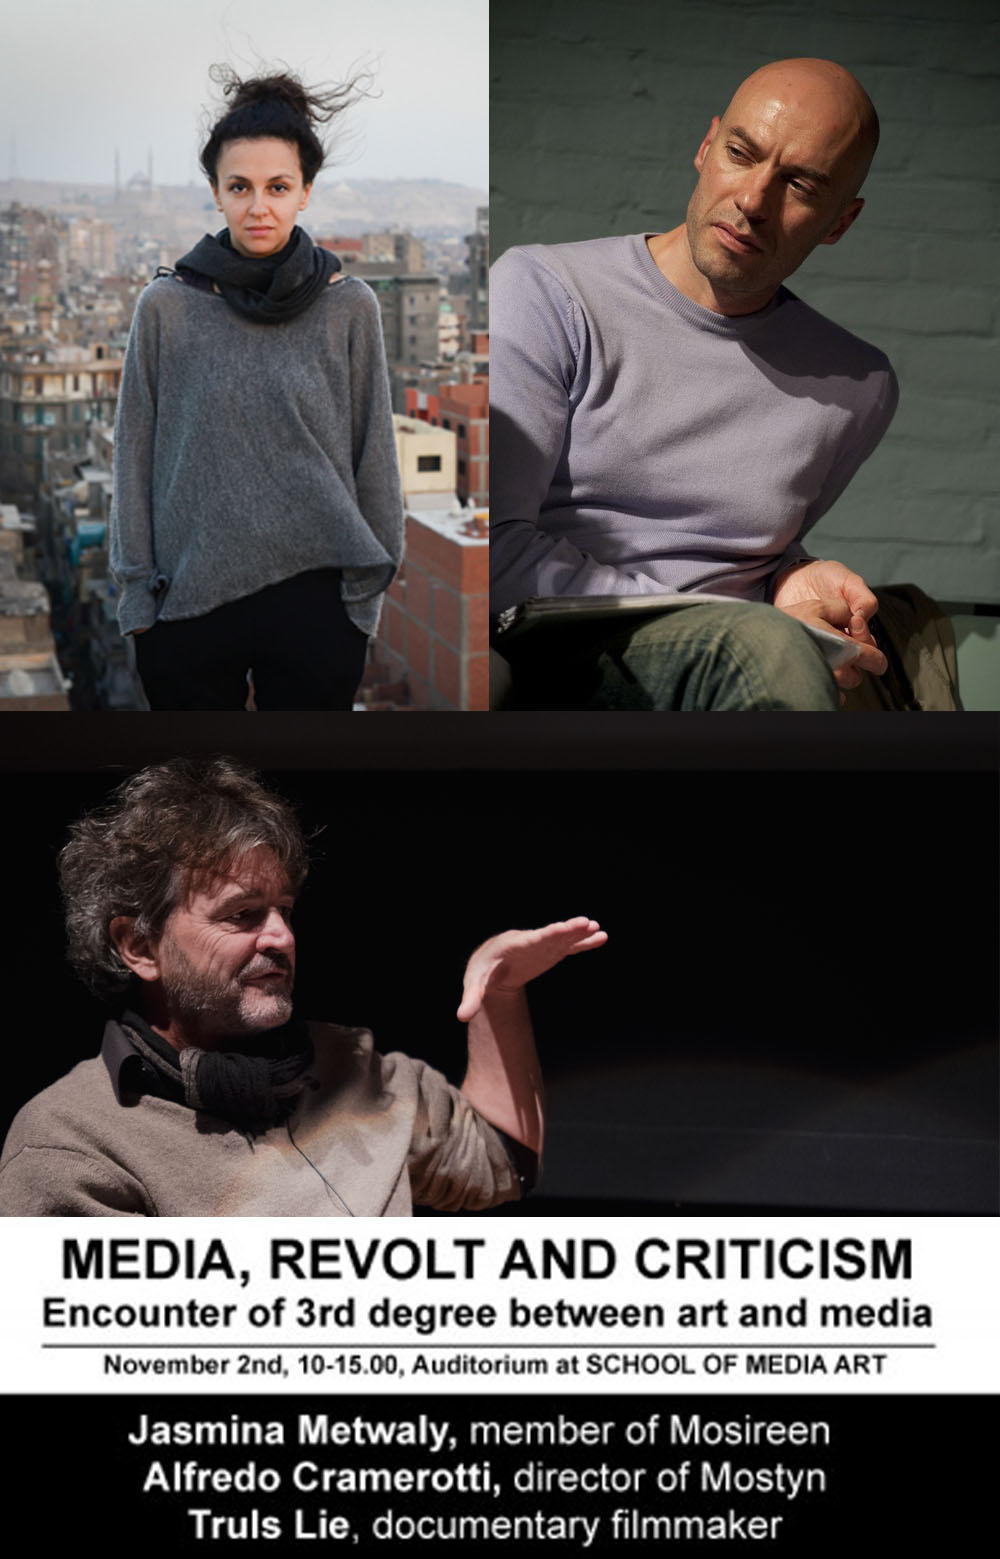 MEDIA, REVOLT AND CRITICISM – Encounter of 3rd degree between art and media